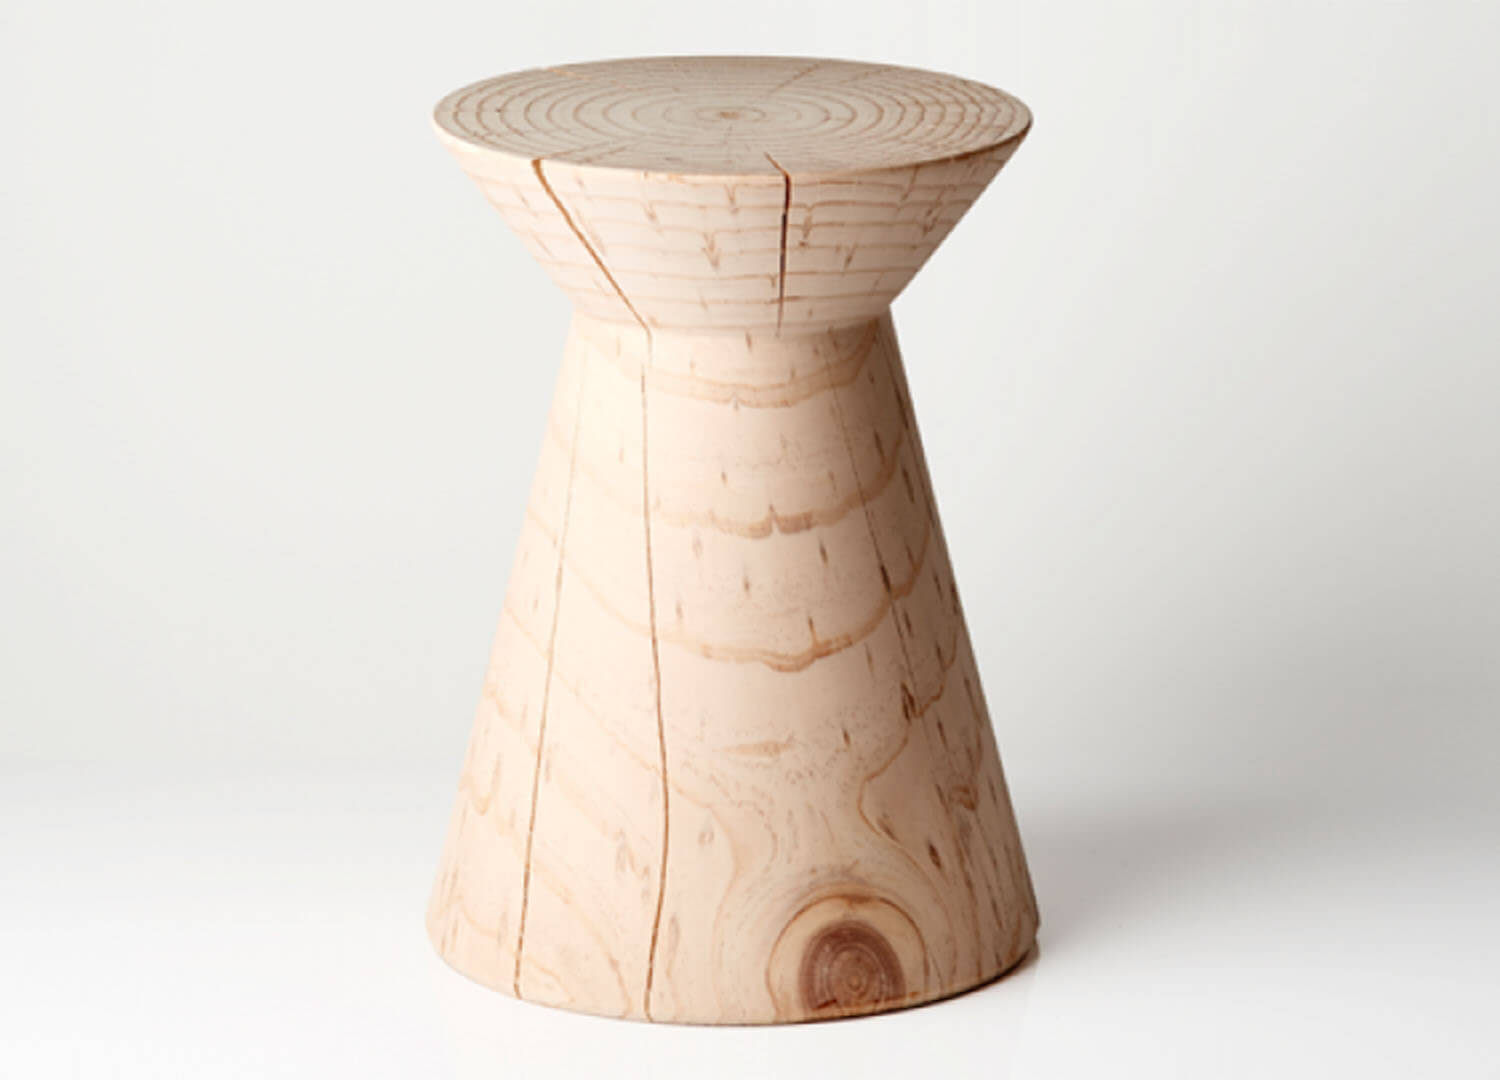 Share Design Diablo Stool Side Table 01 900x540 copy